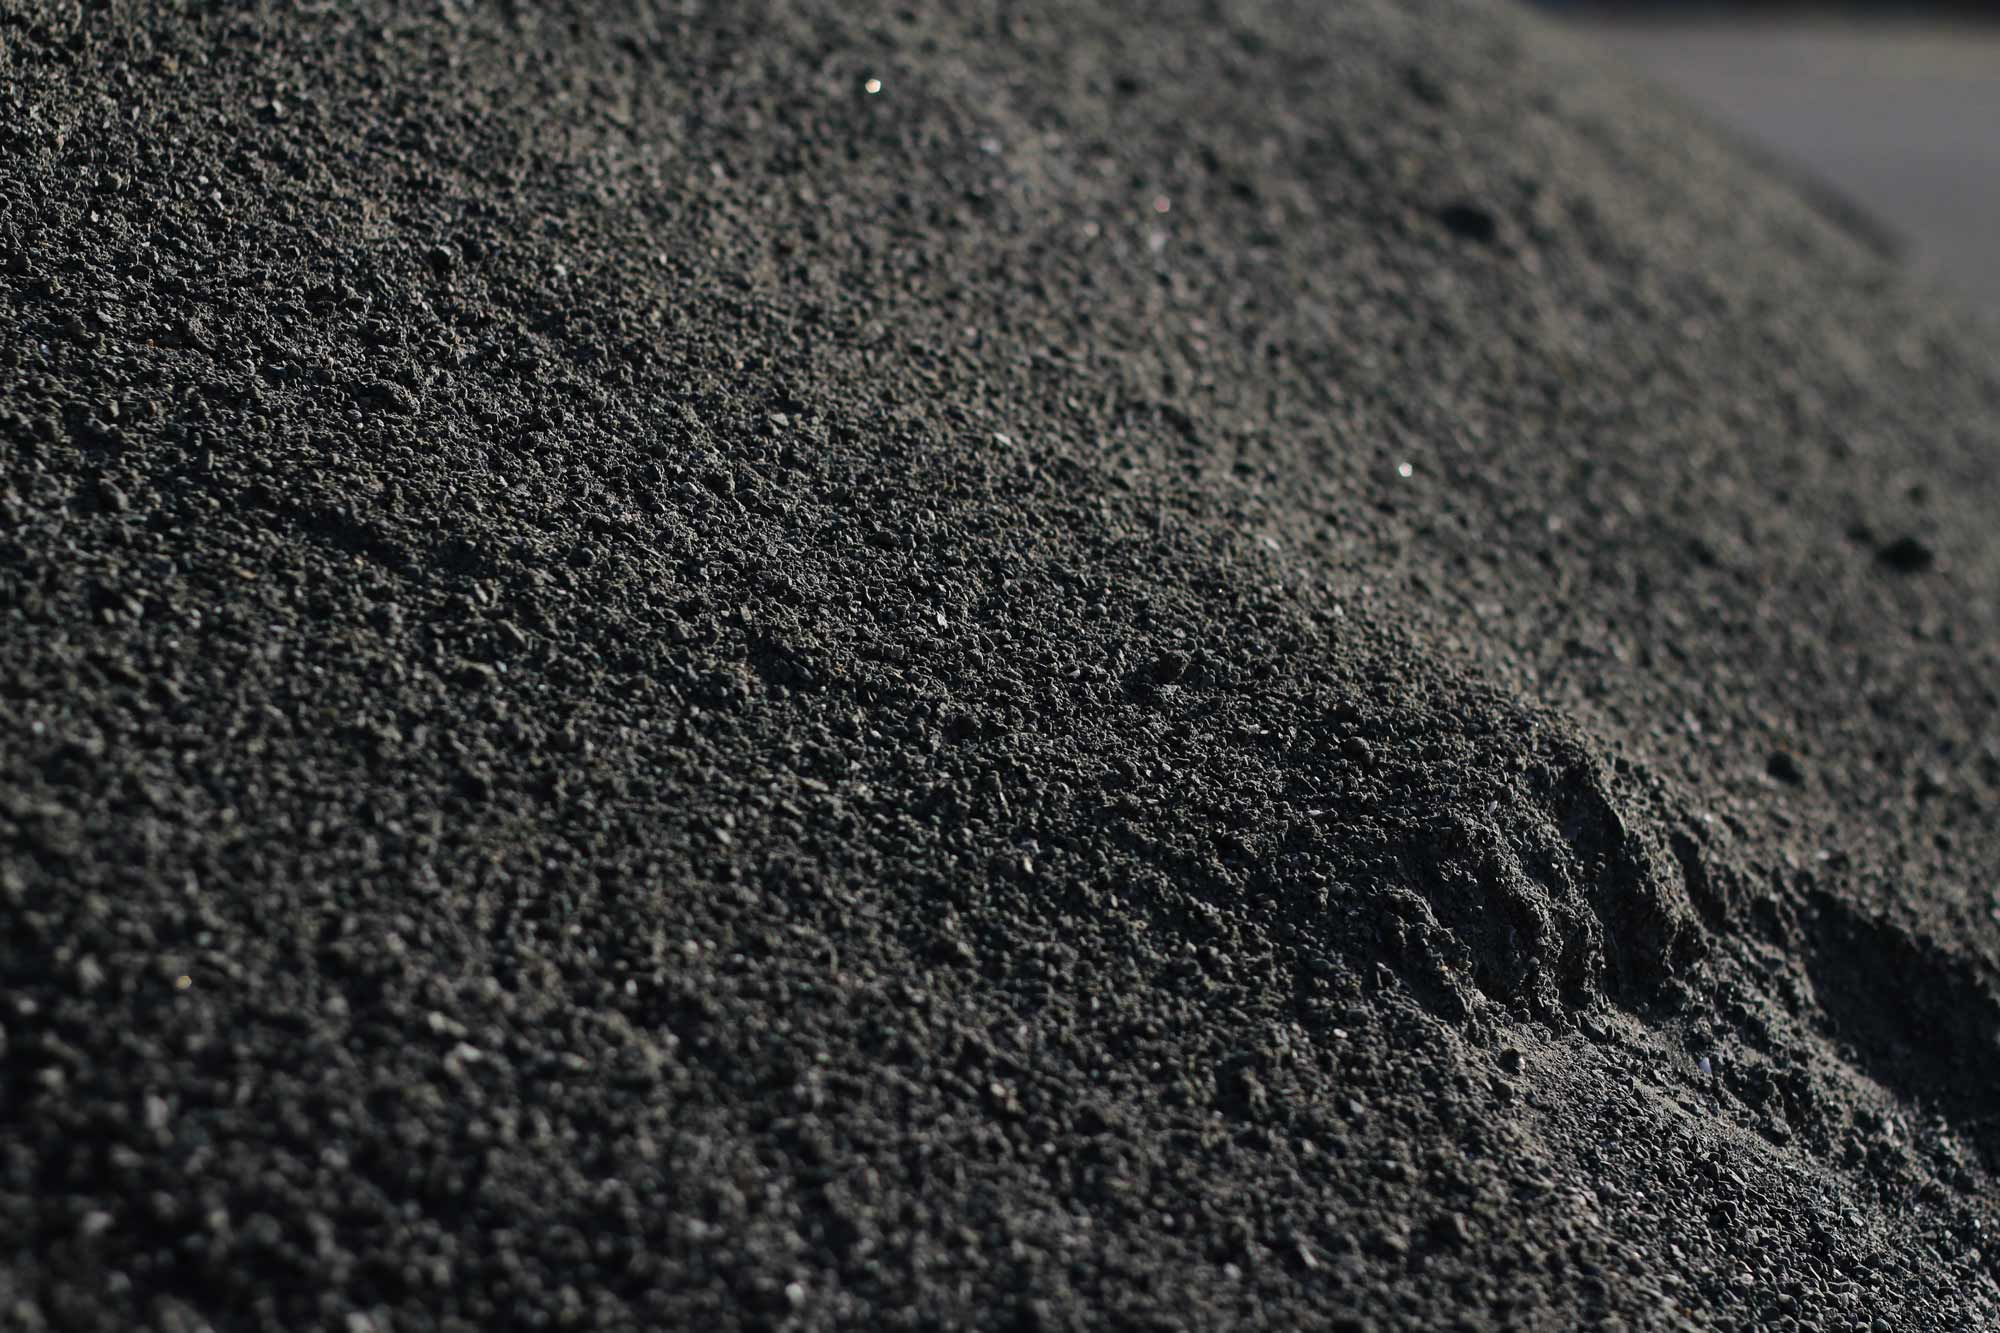 This native, dark basaltic aggregate comprises the bulk of our rice husk ash masonry mix design.